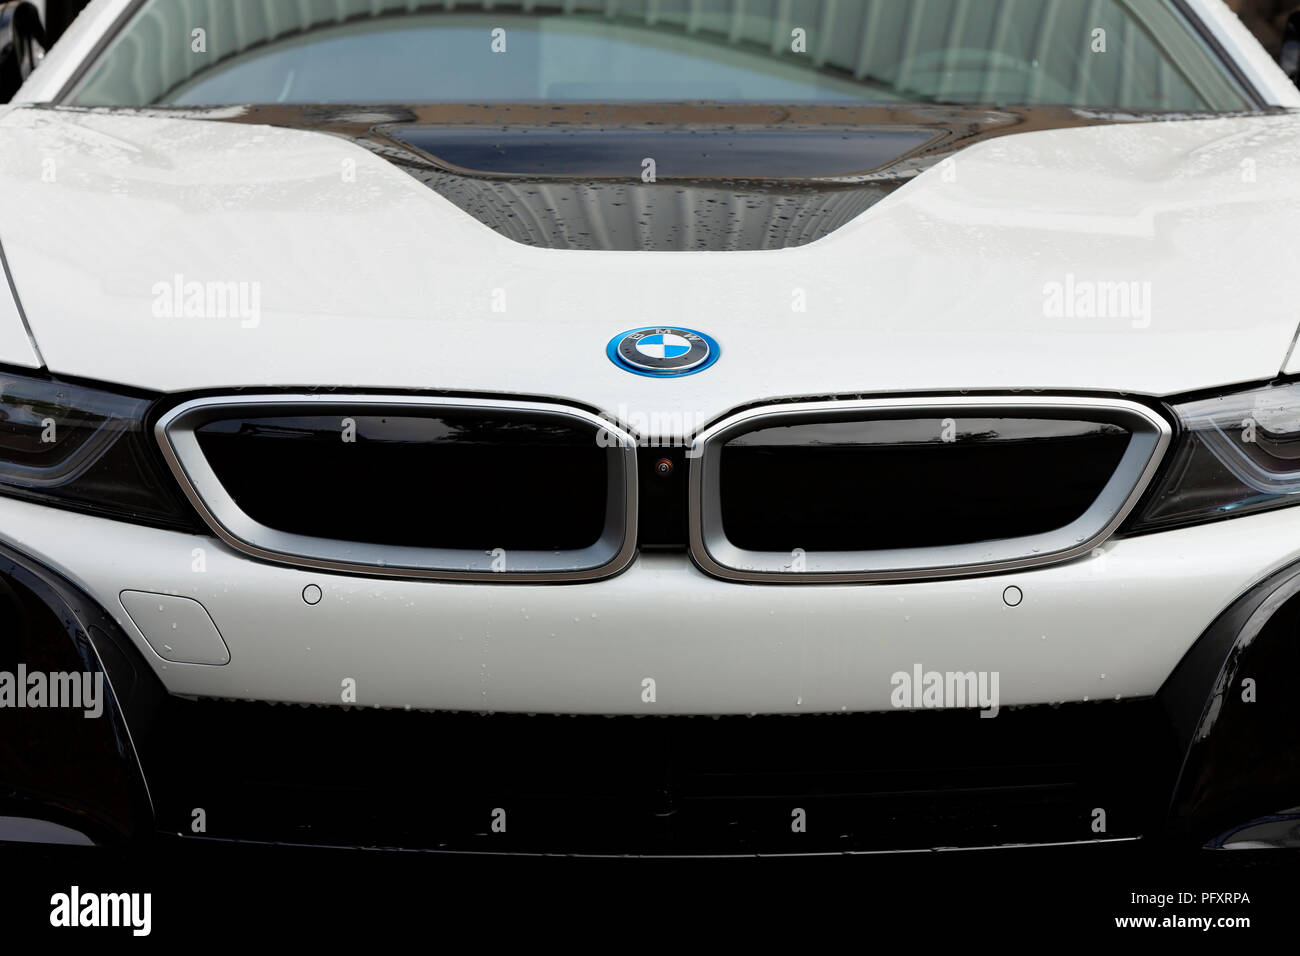 New Bmw I8 Coupe Of White Color Exposed At The Fair Trade Of Gijon